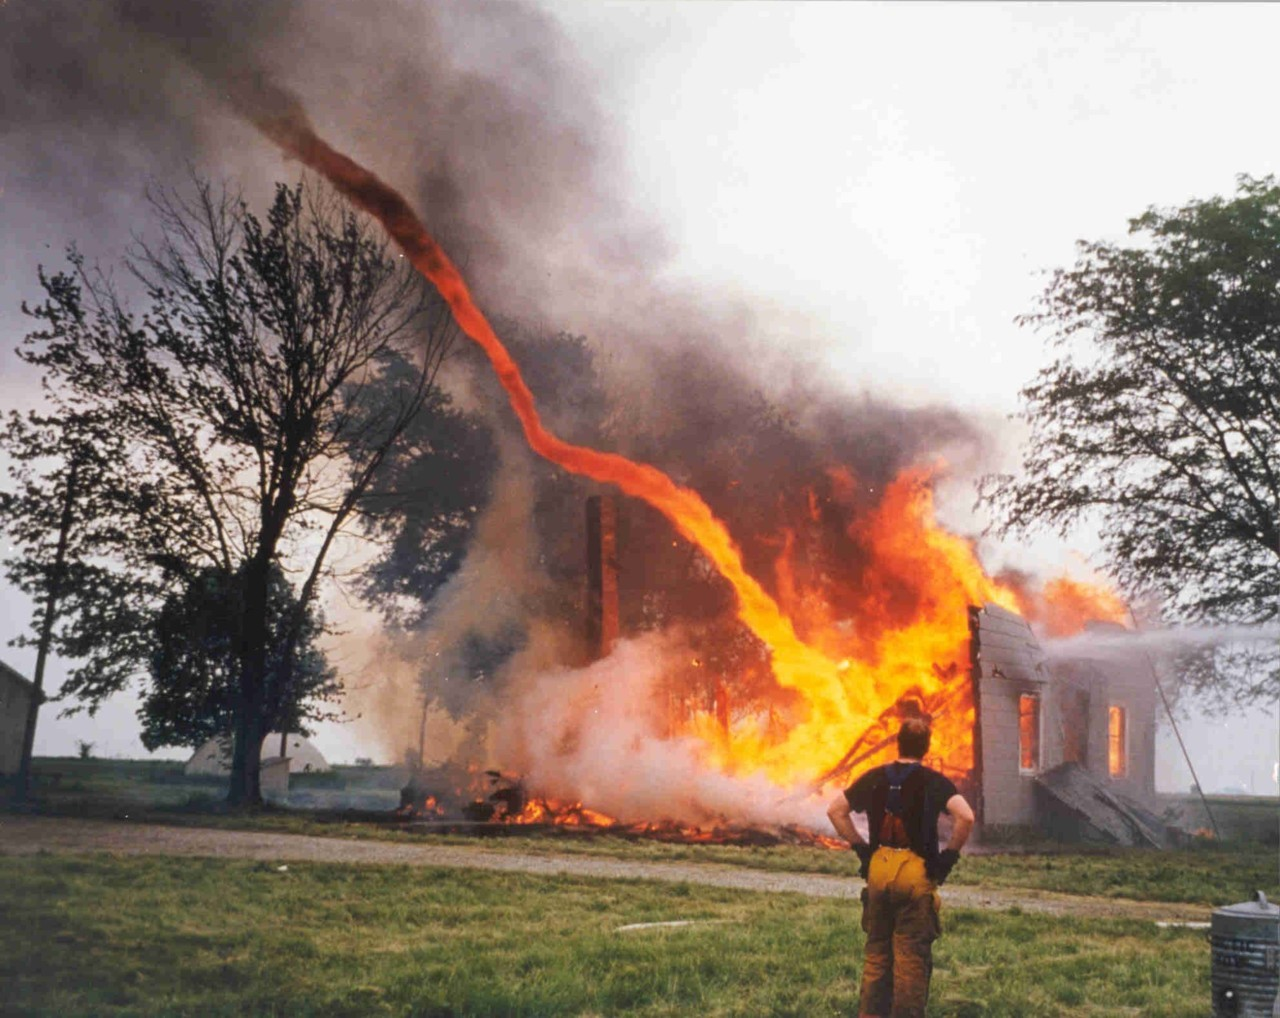 Fire from a burning building being sucked into a tornado.